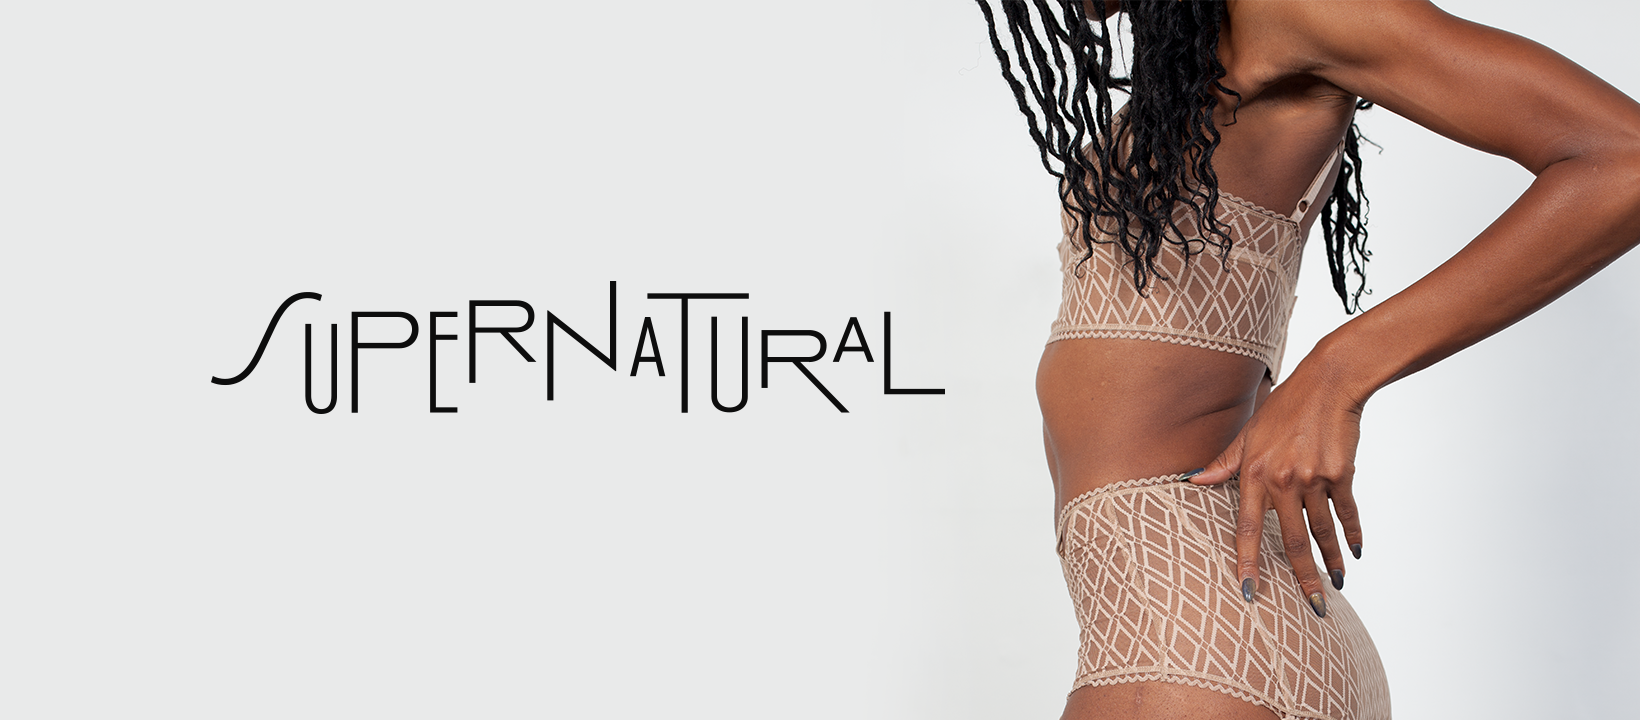 Supernatural Lingerie